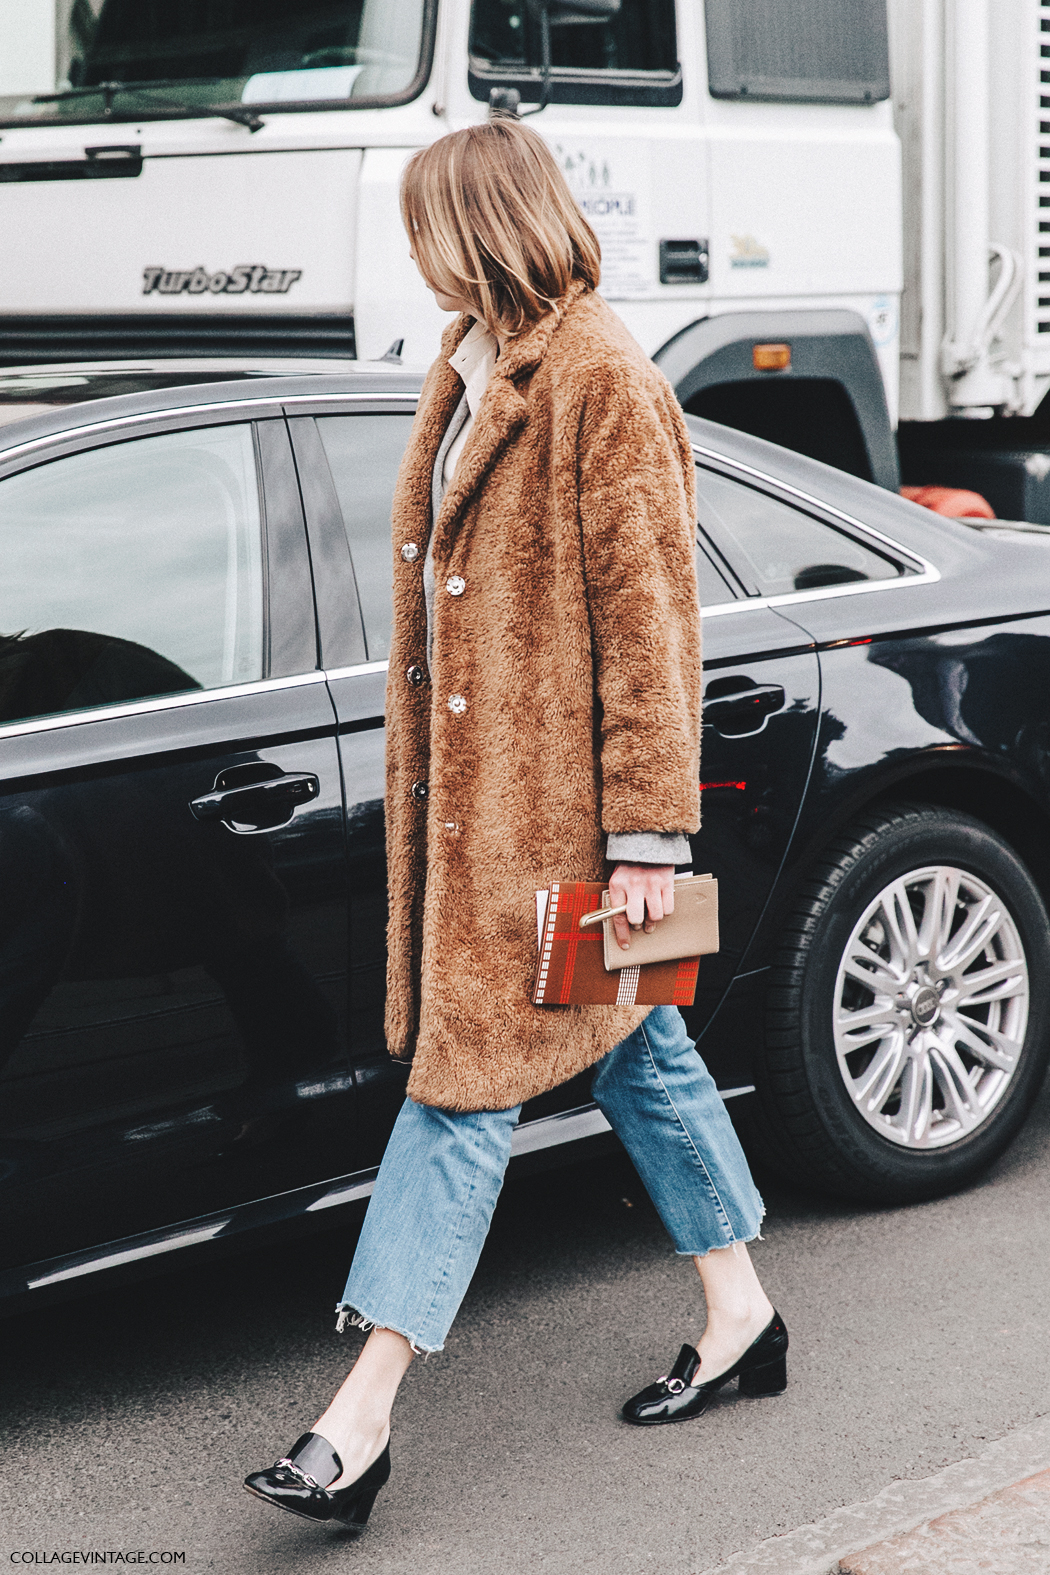 Milan_Fashion_Week_Fall_16-MFW-Street_Style-Collage_Vintage-Gucci_Shoes-Fur_coat-1